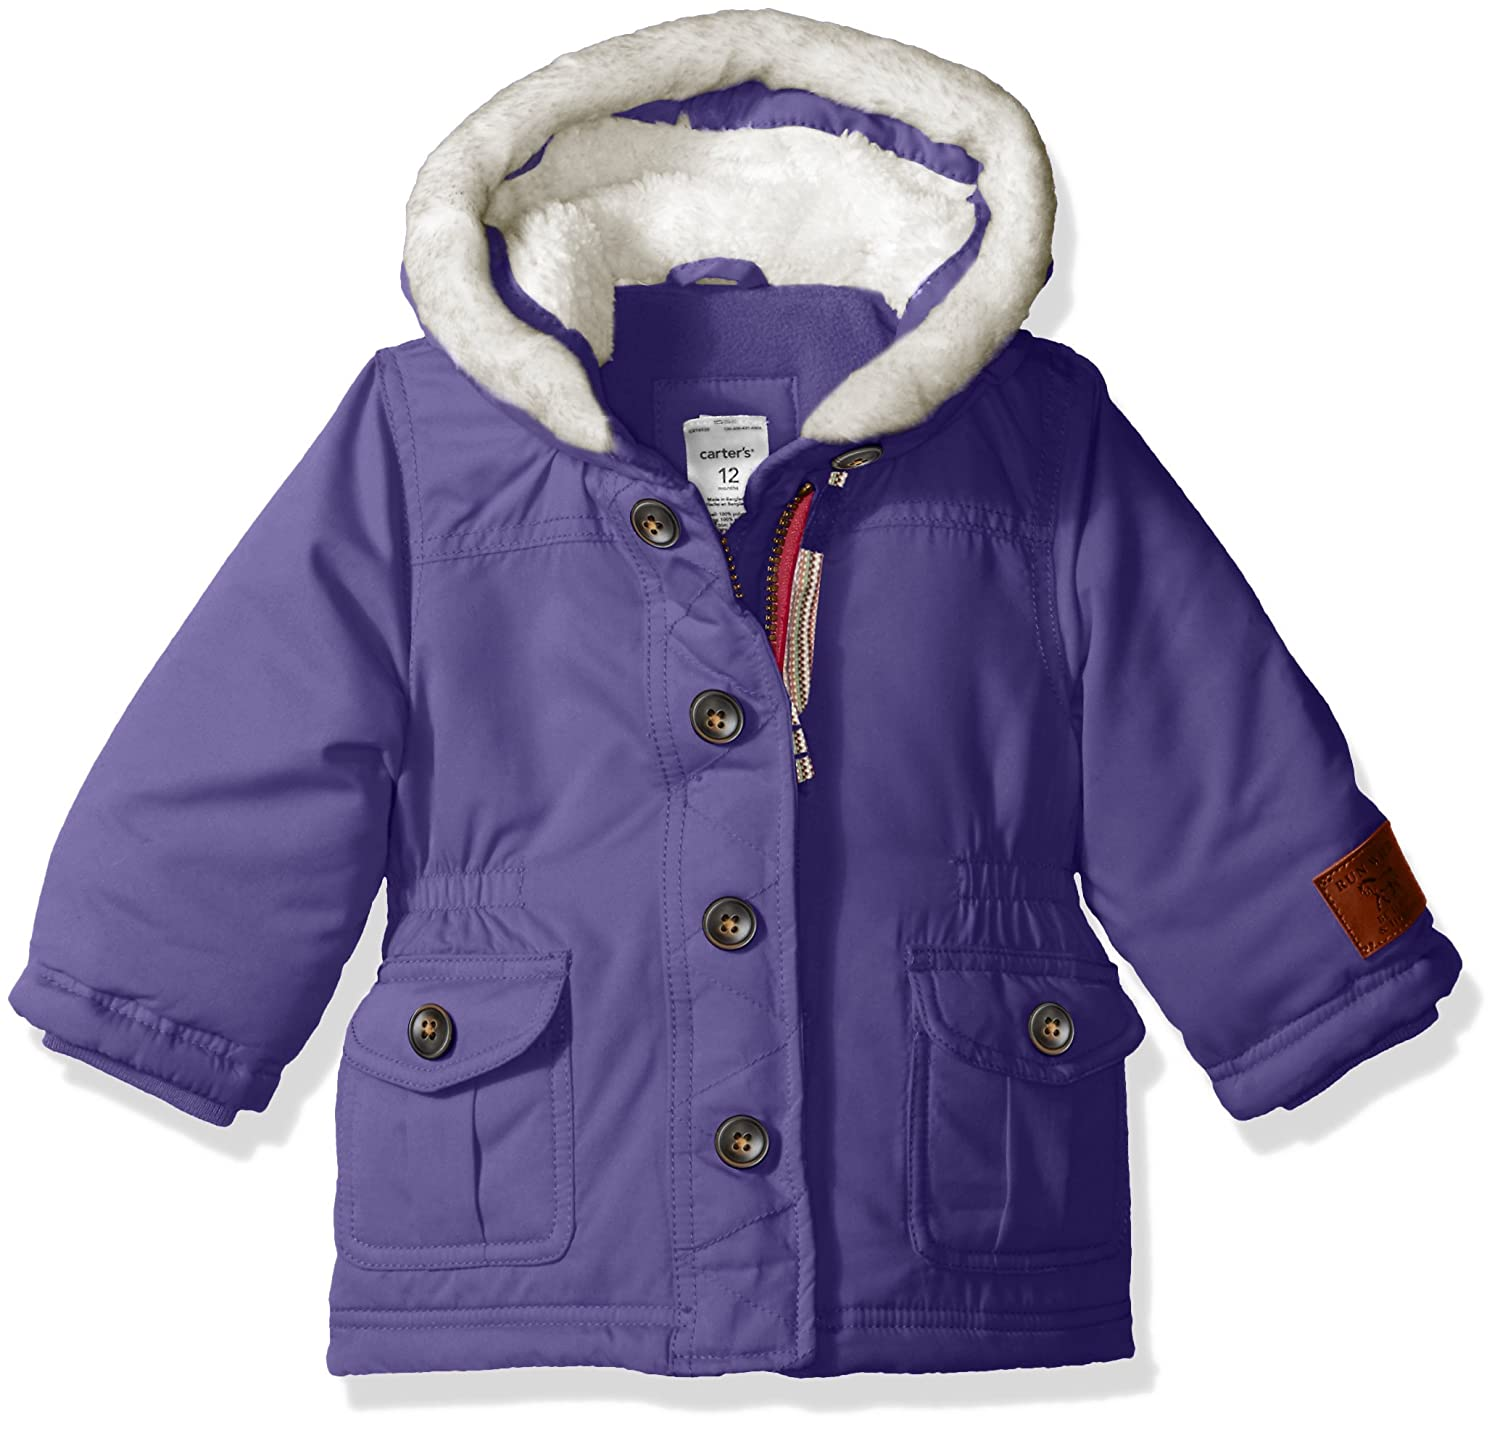 64cbdd090 Amazon.com  Carter s Baby Girls  Infant Heavyweight Fashion Anorak ...